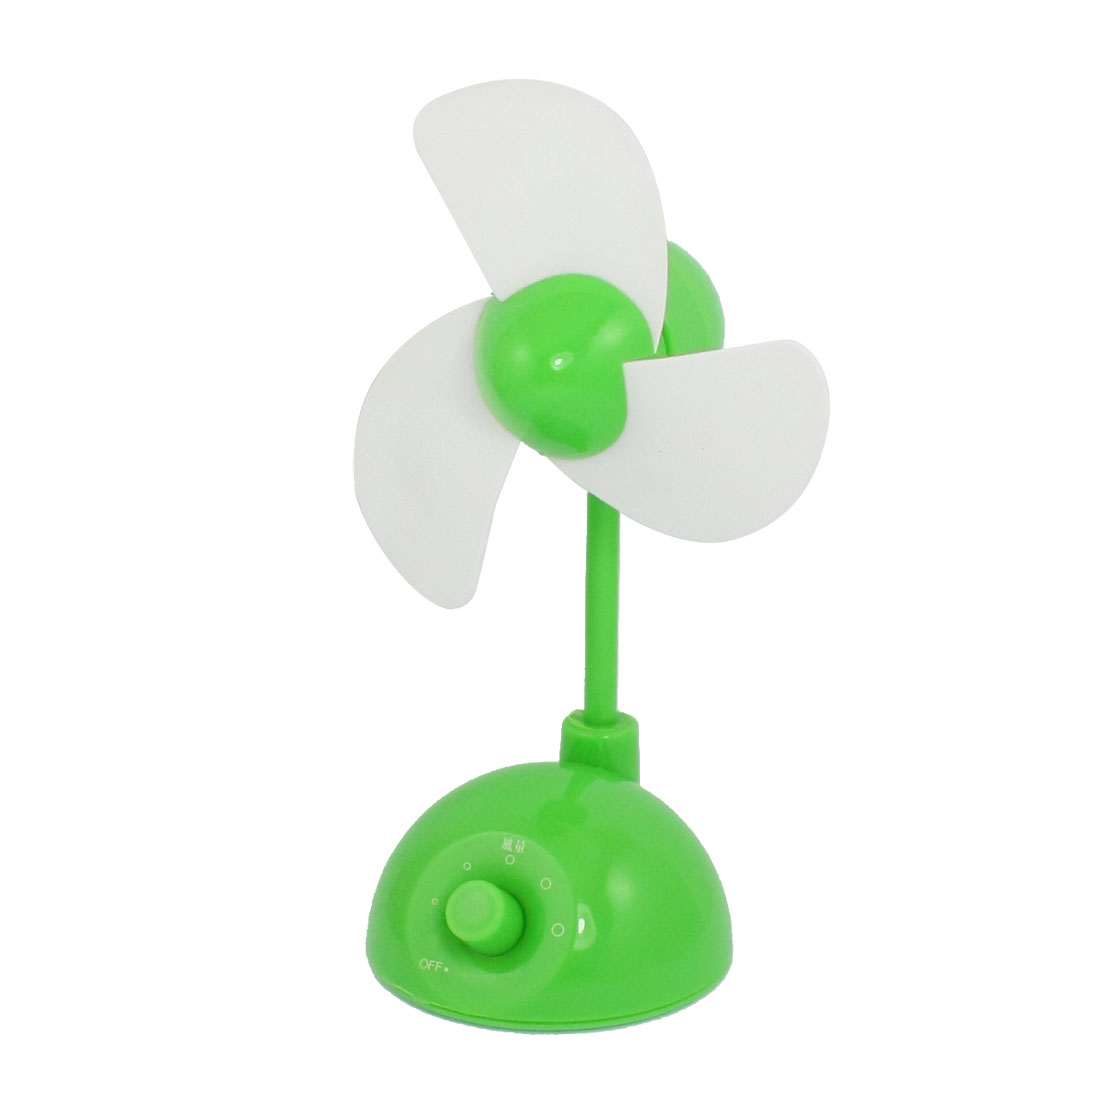 Wind Power Adjustable 1M Cable Laptop USB Fan Green White